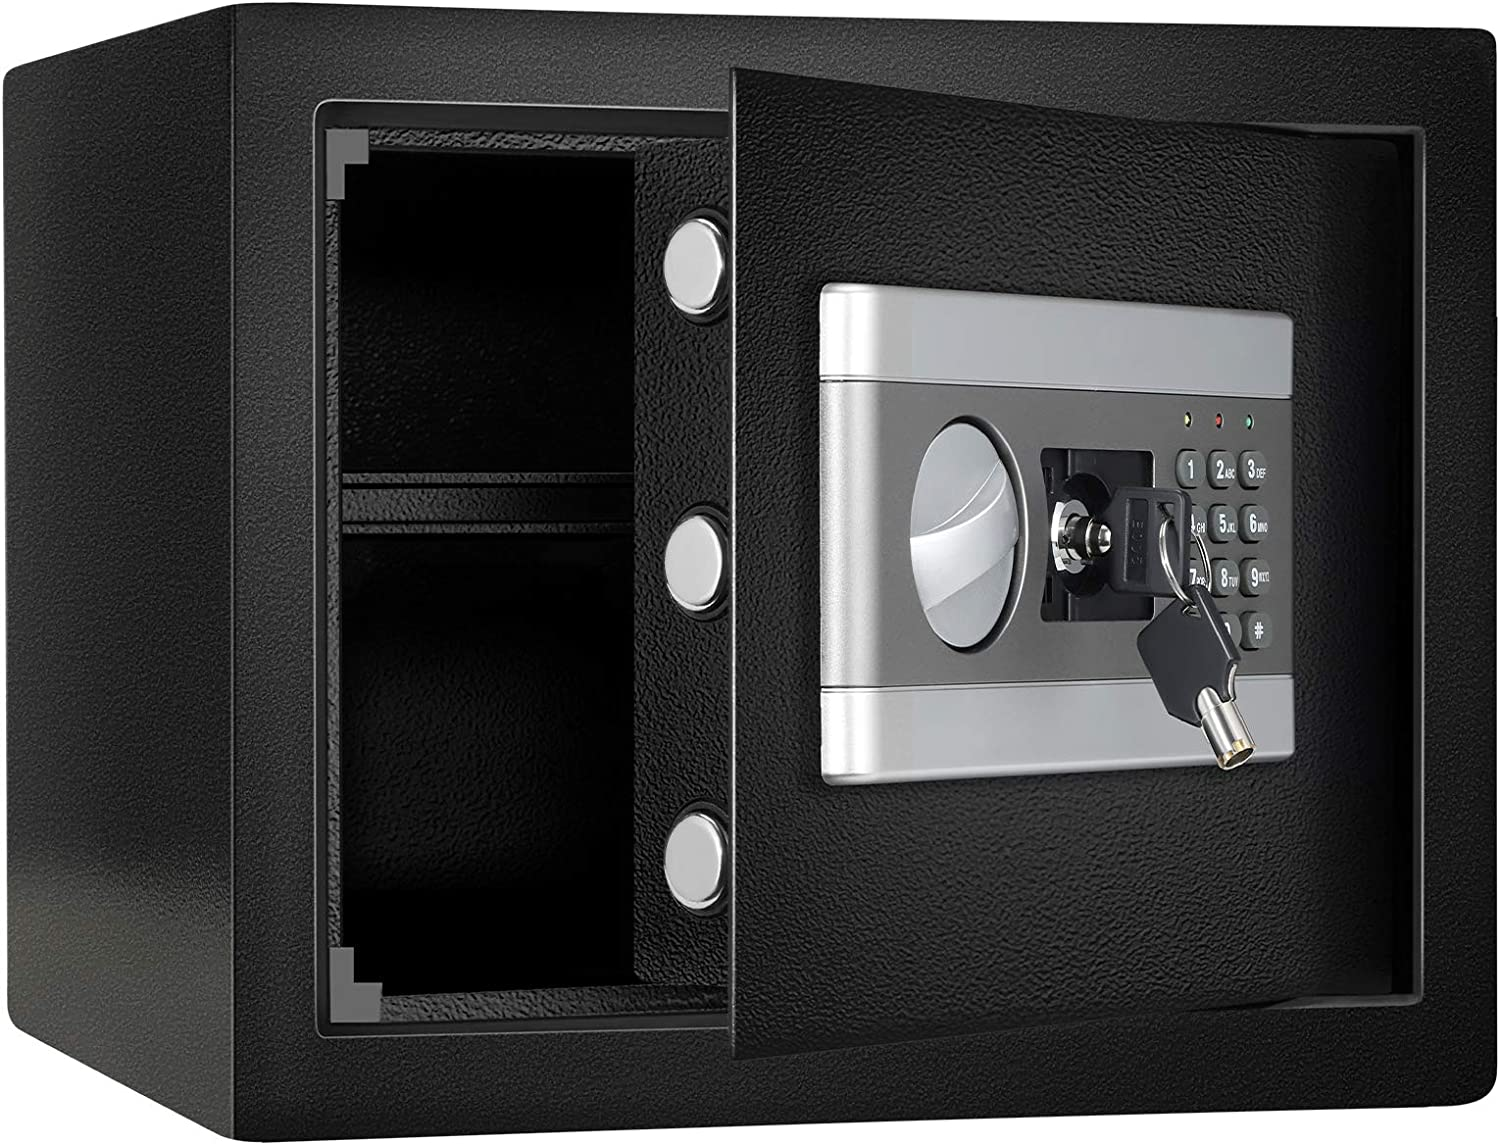 1.0 Cub Fireproof and Waterproof Safe Box, Dual-Security Steel Safe Cabinet with Keypad LED Indicator, Digital Combination Lock Safe, for Money Gun Jewelry Document